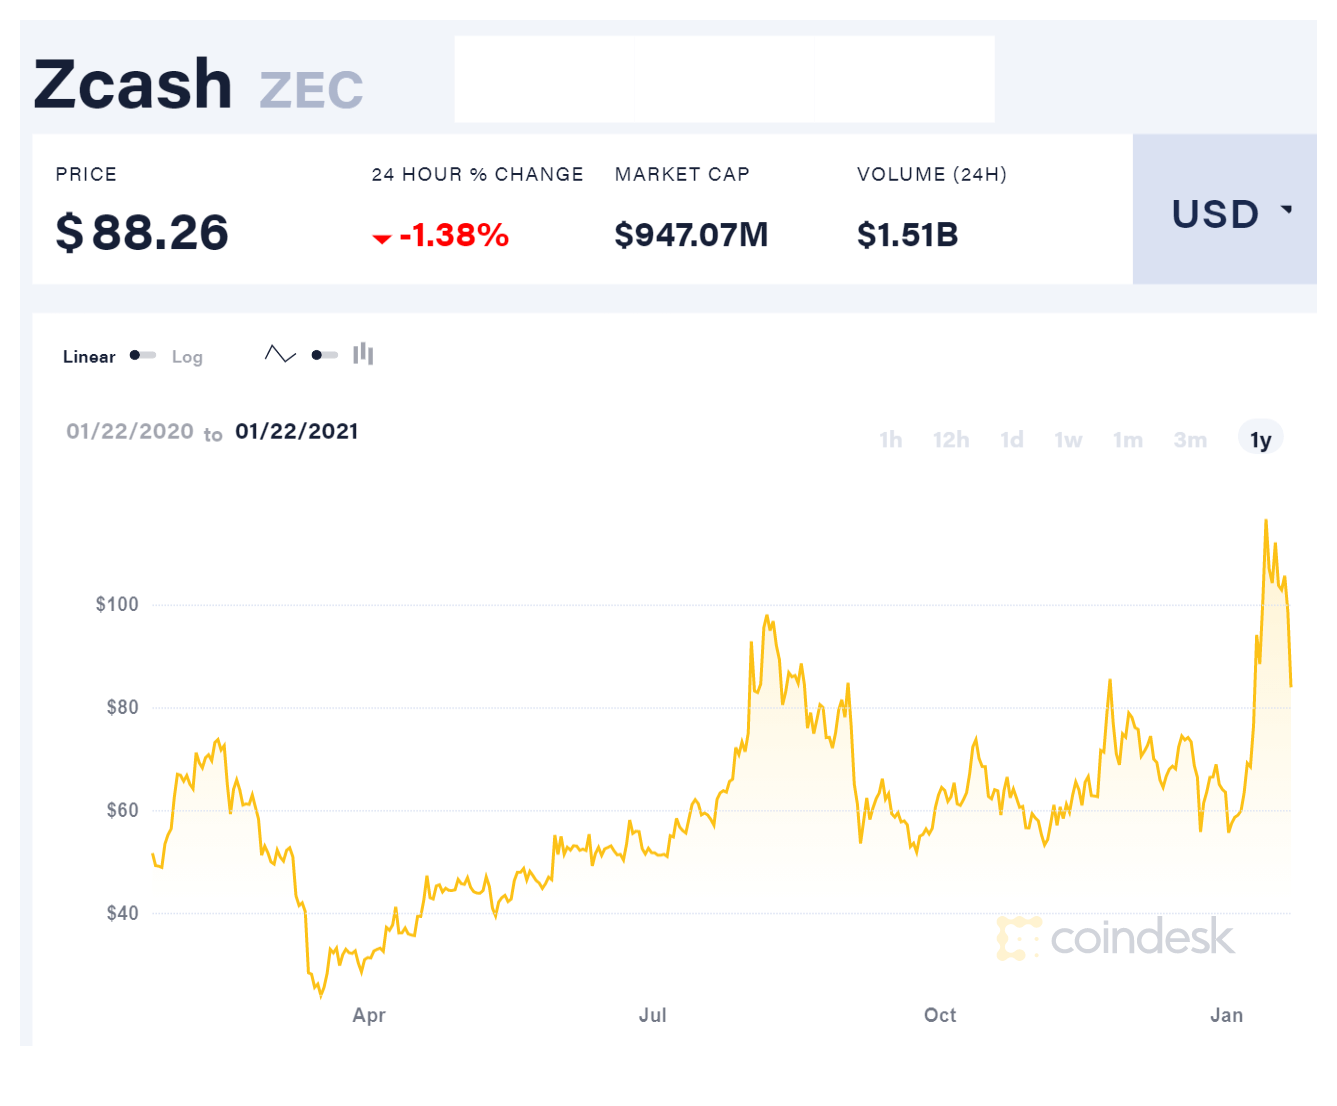 zcash price chart from january 22 2020 to january 22 2021